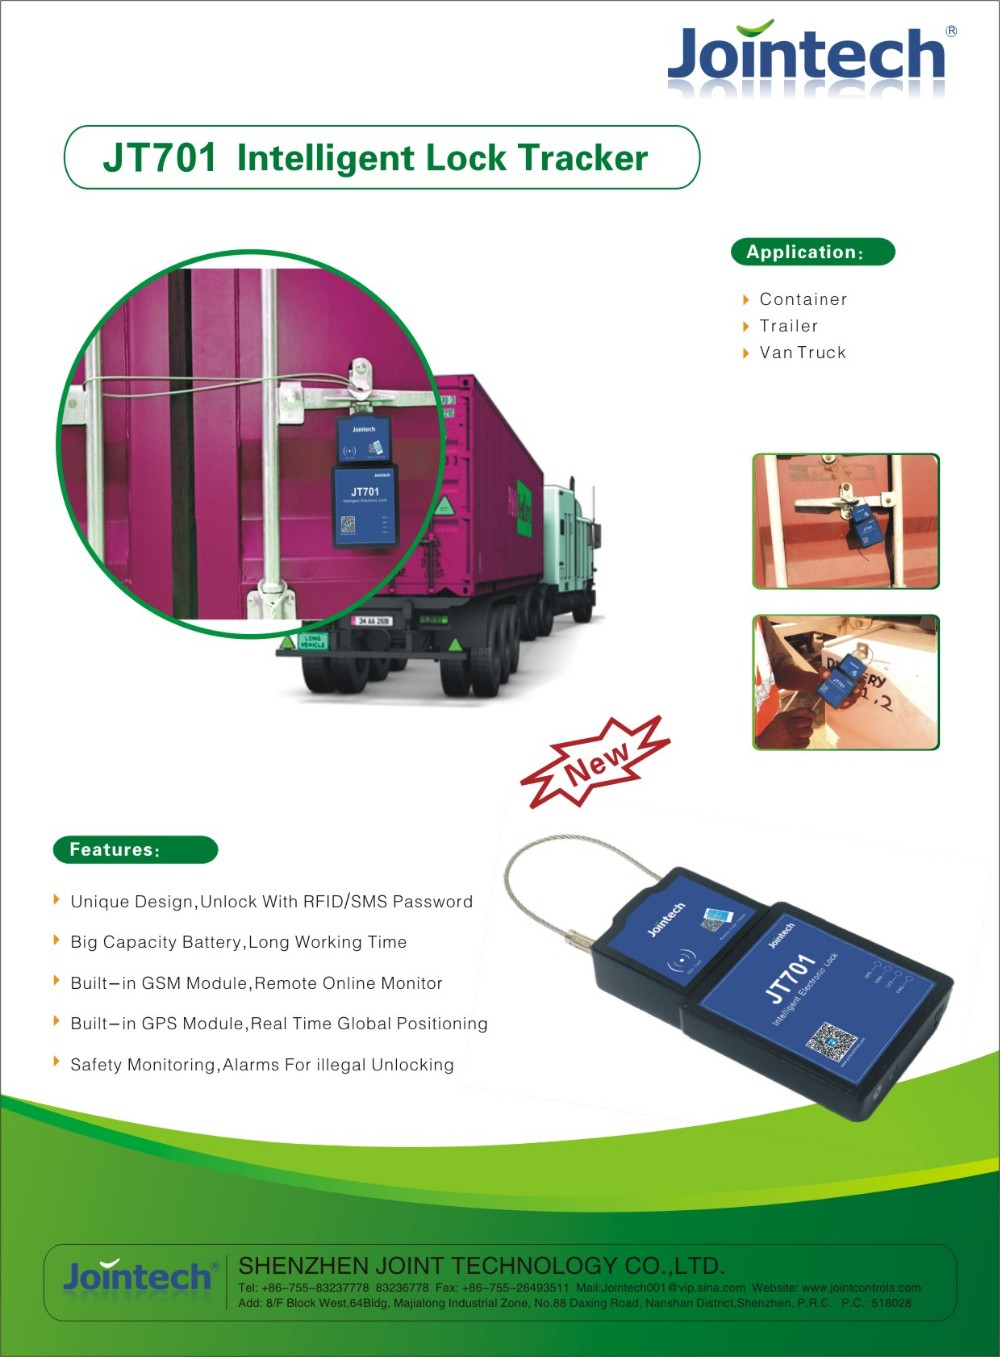 GPS container E lock container sealing lock tracker for container locking, and cargo security solution